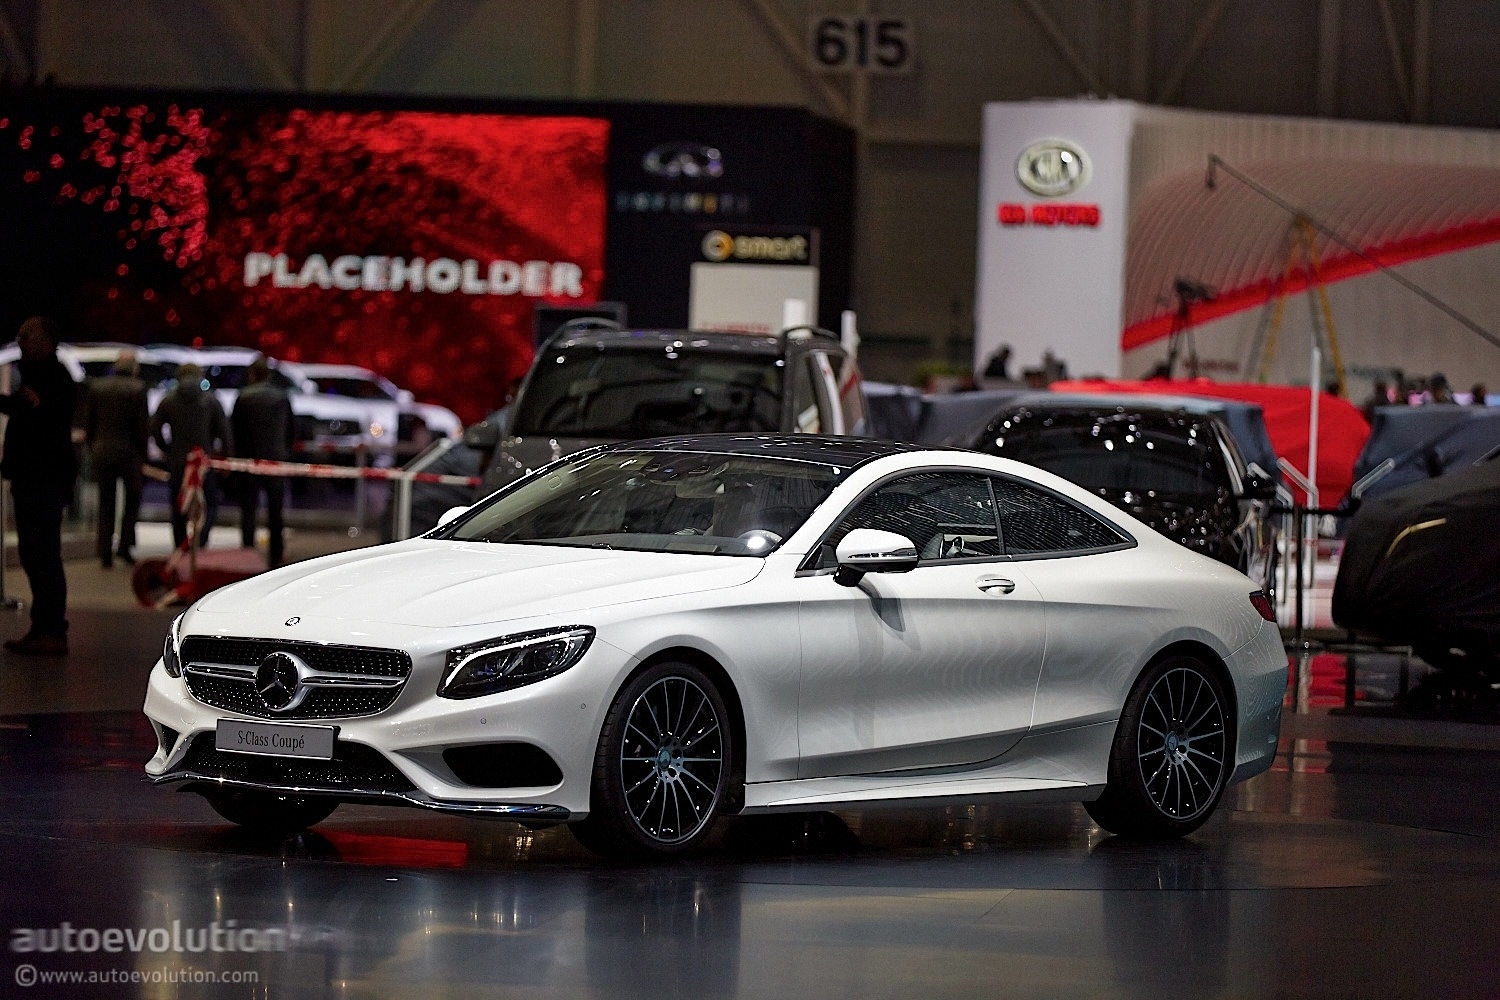 The Mercedes Benz S Class Coupe C217 Reaches Geneva